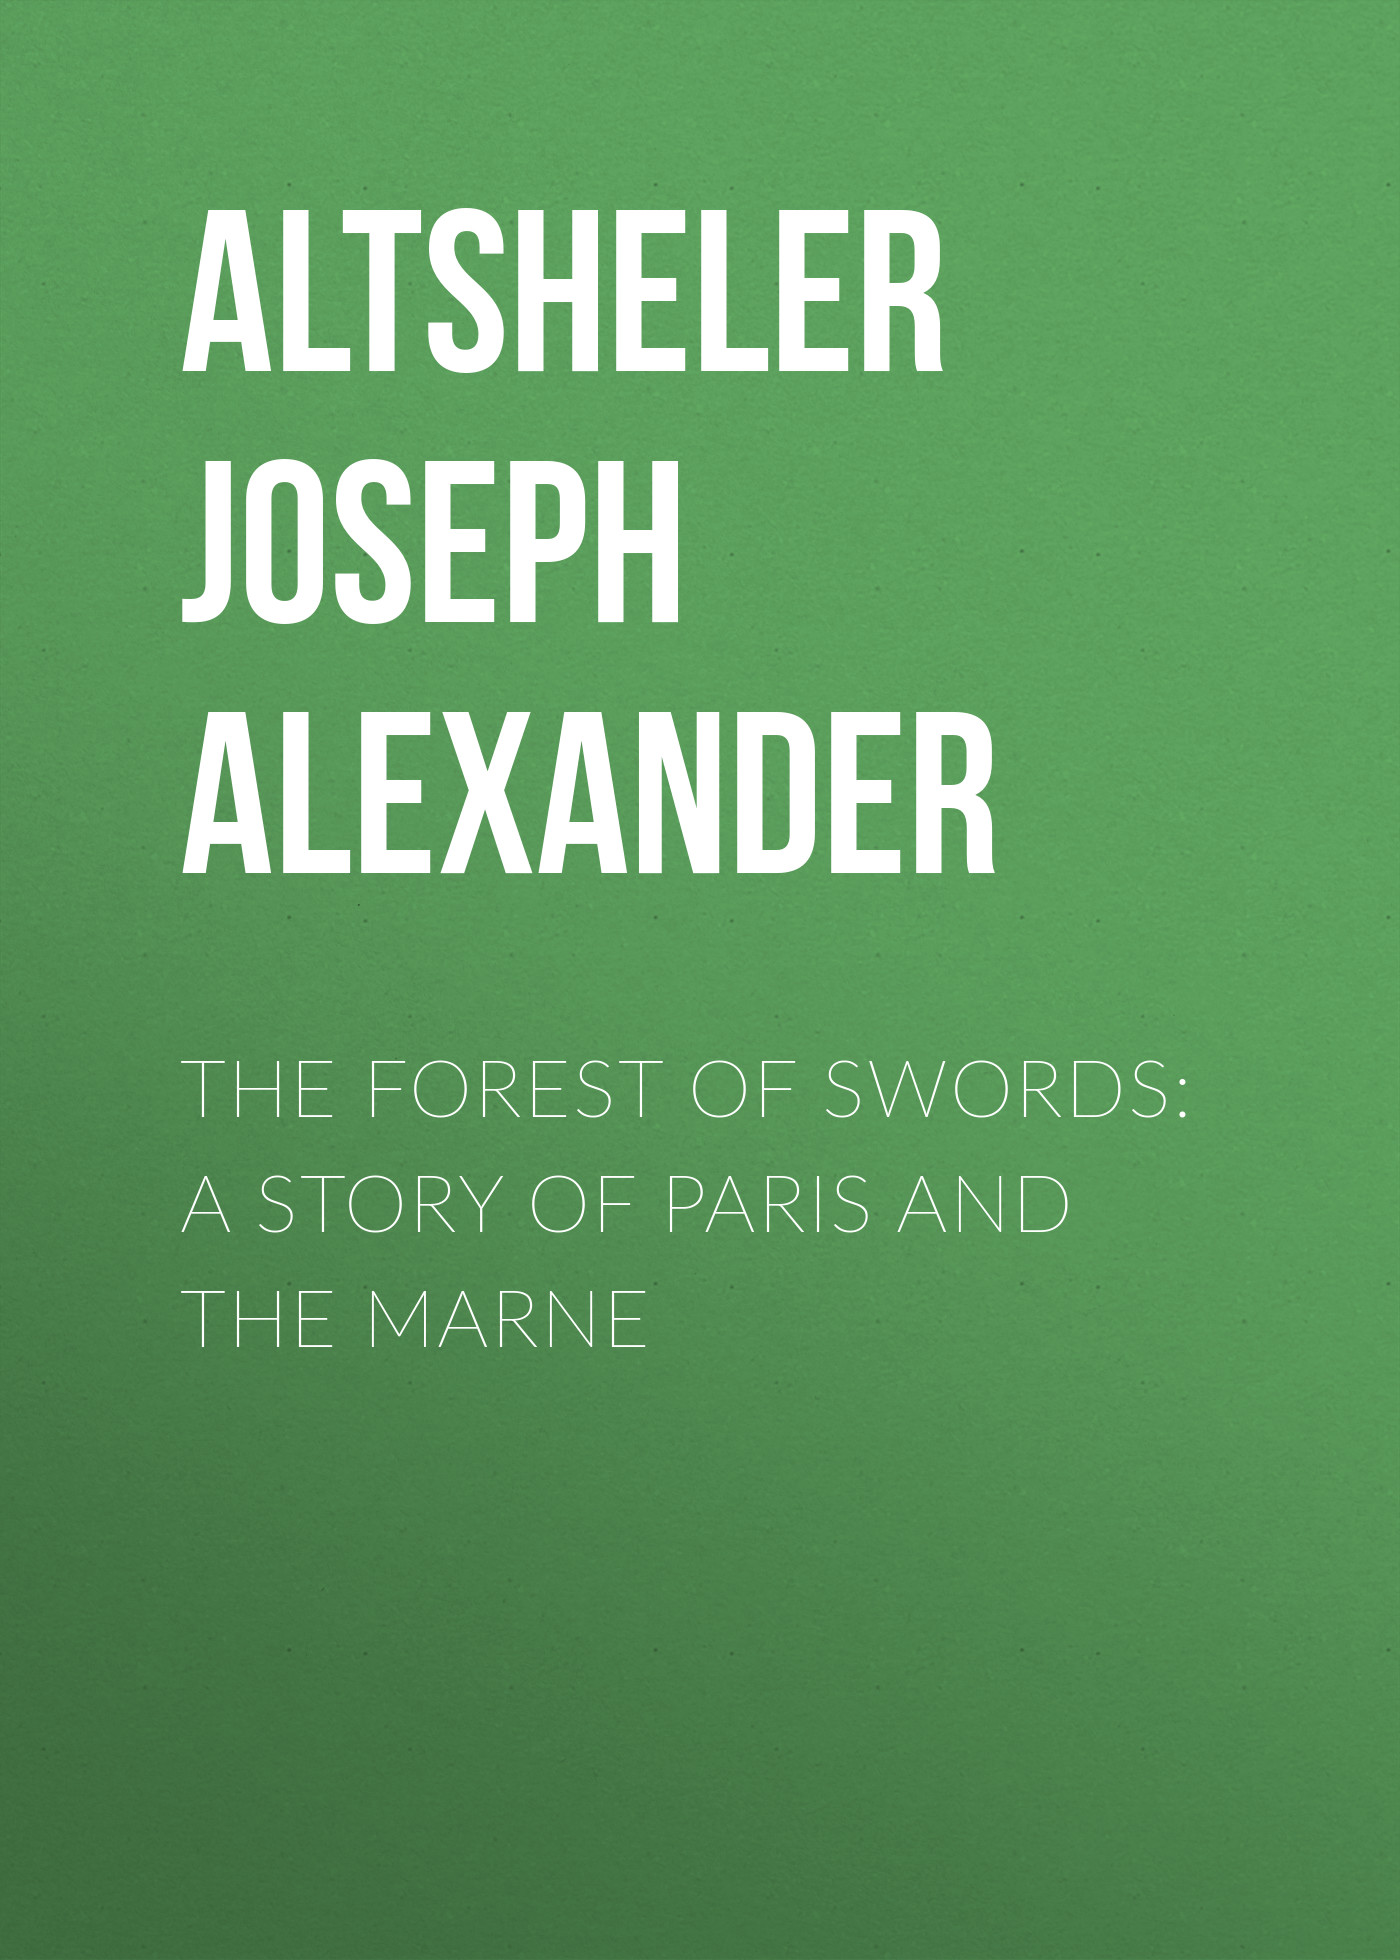 Altsheler Joseph Alexander The Forest of Swords: A Story of Paris and the Marne the swords of night and day